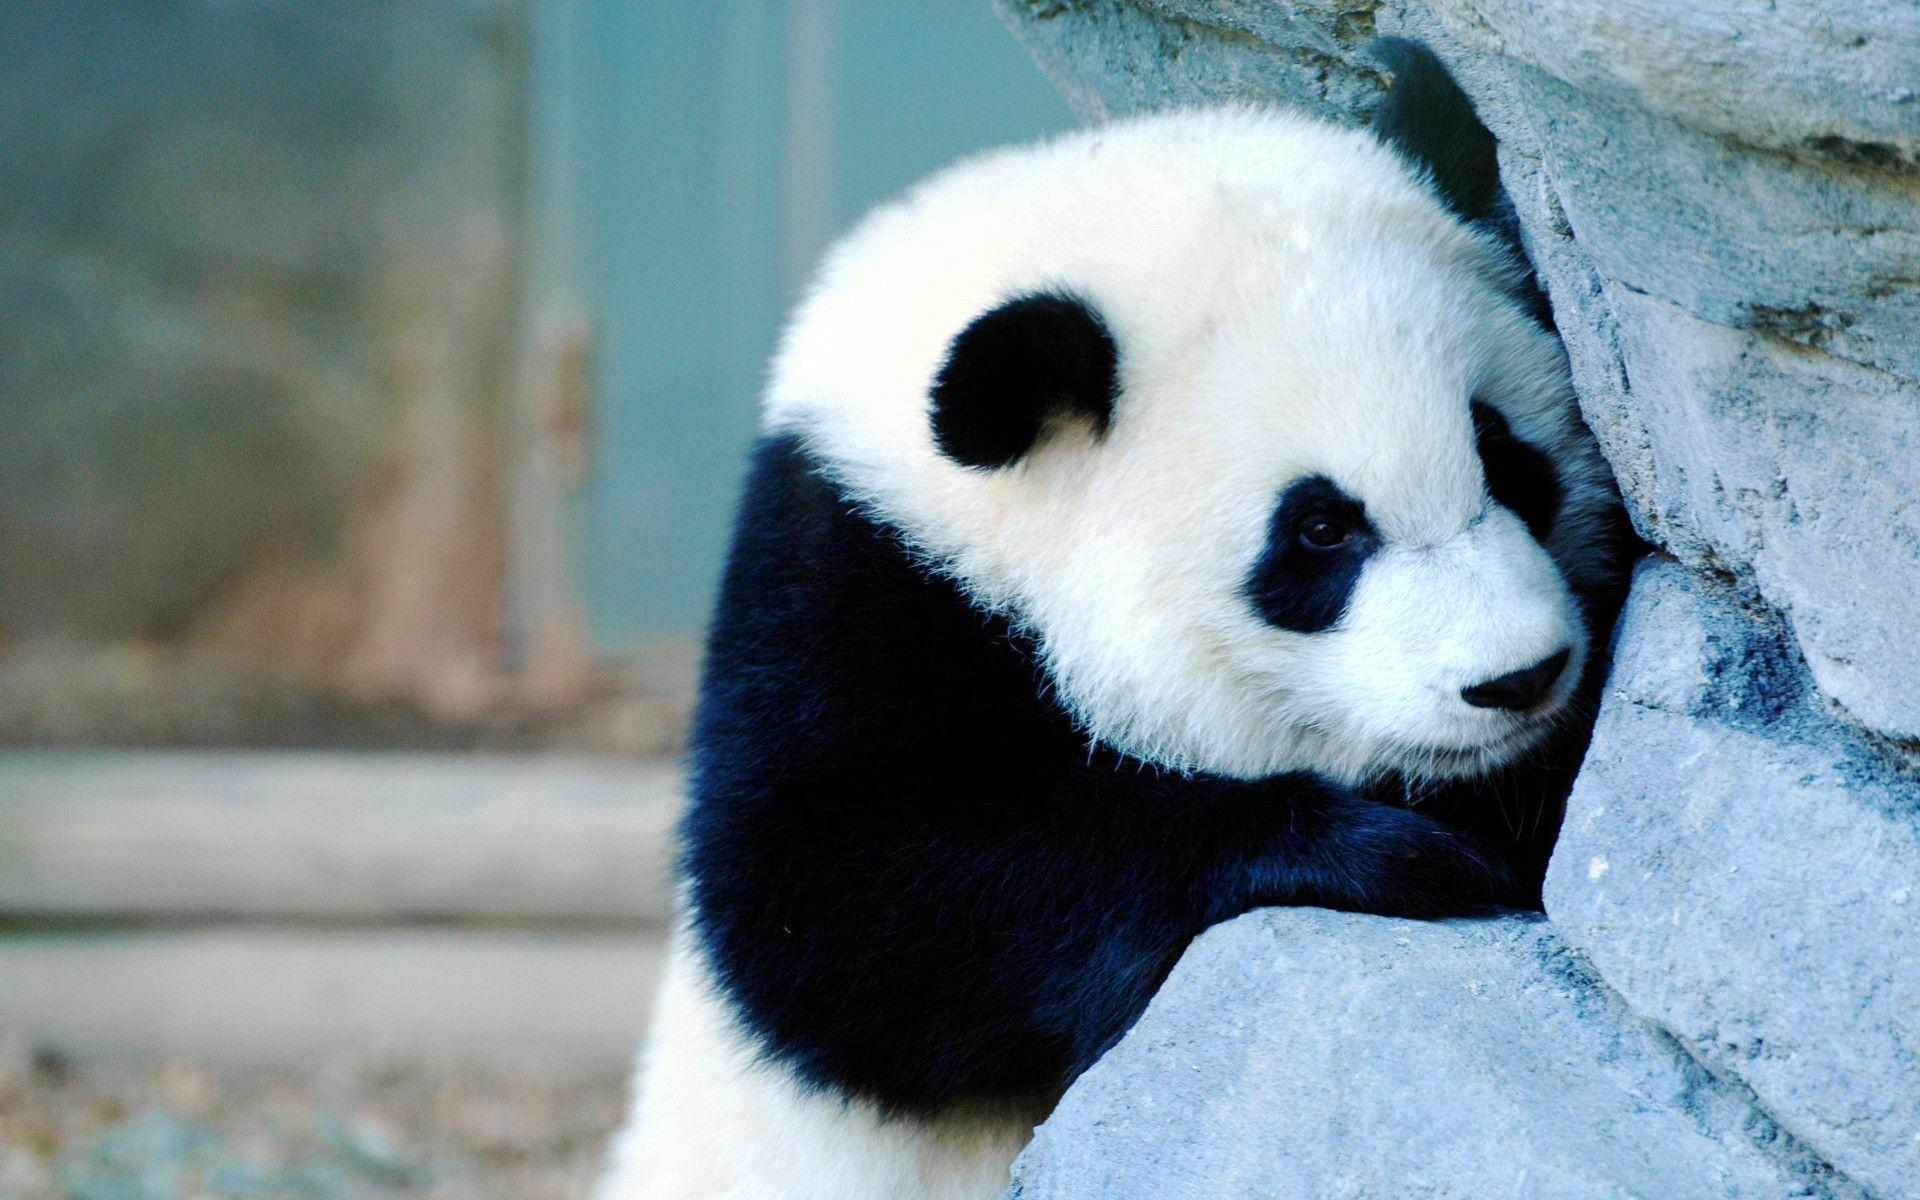 panda pictures hd wallpapers - photo #19